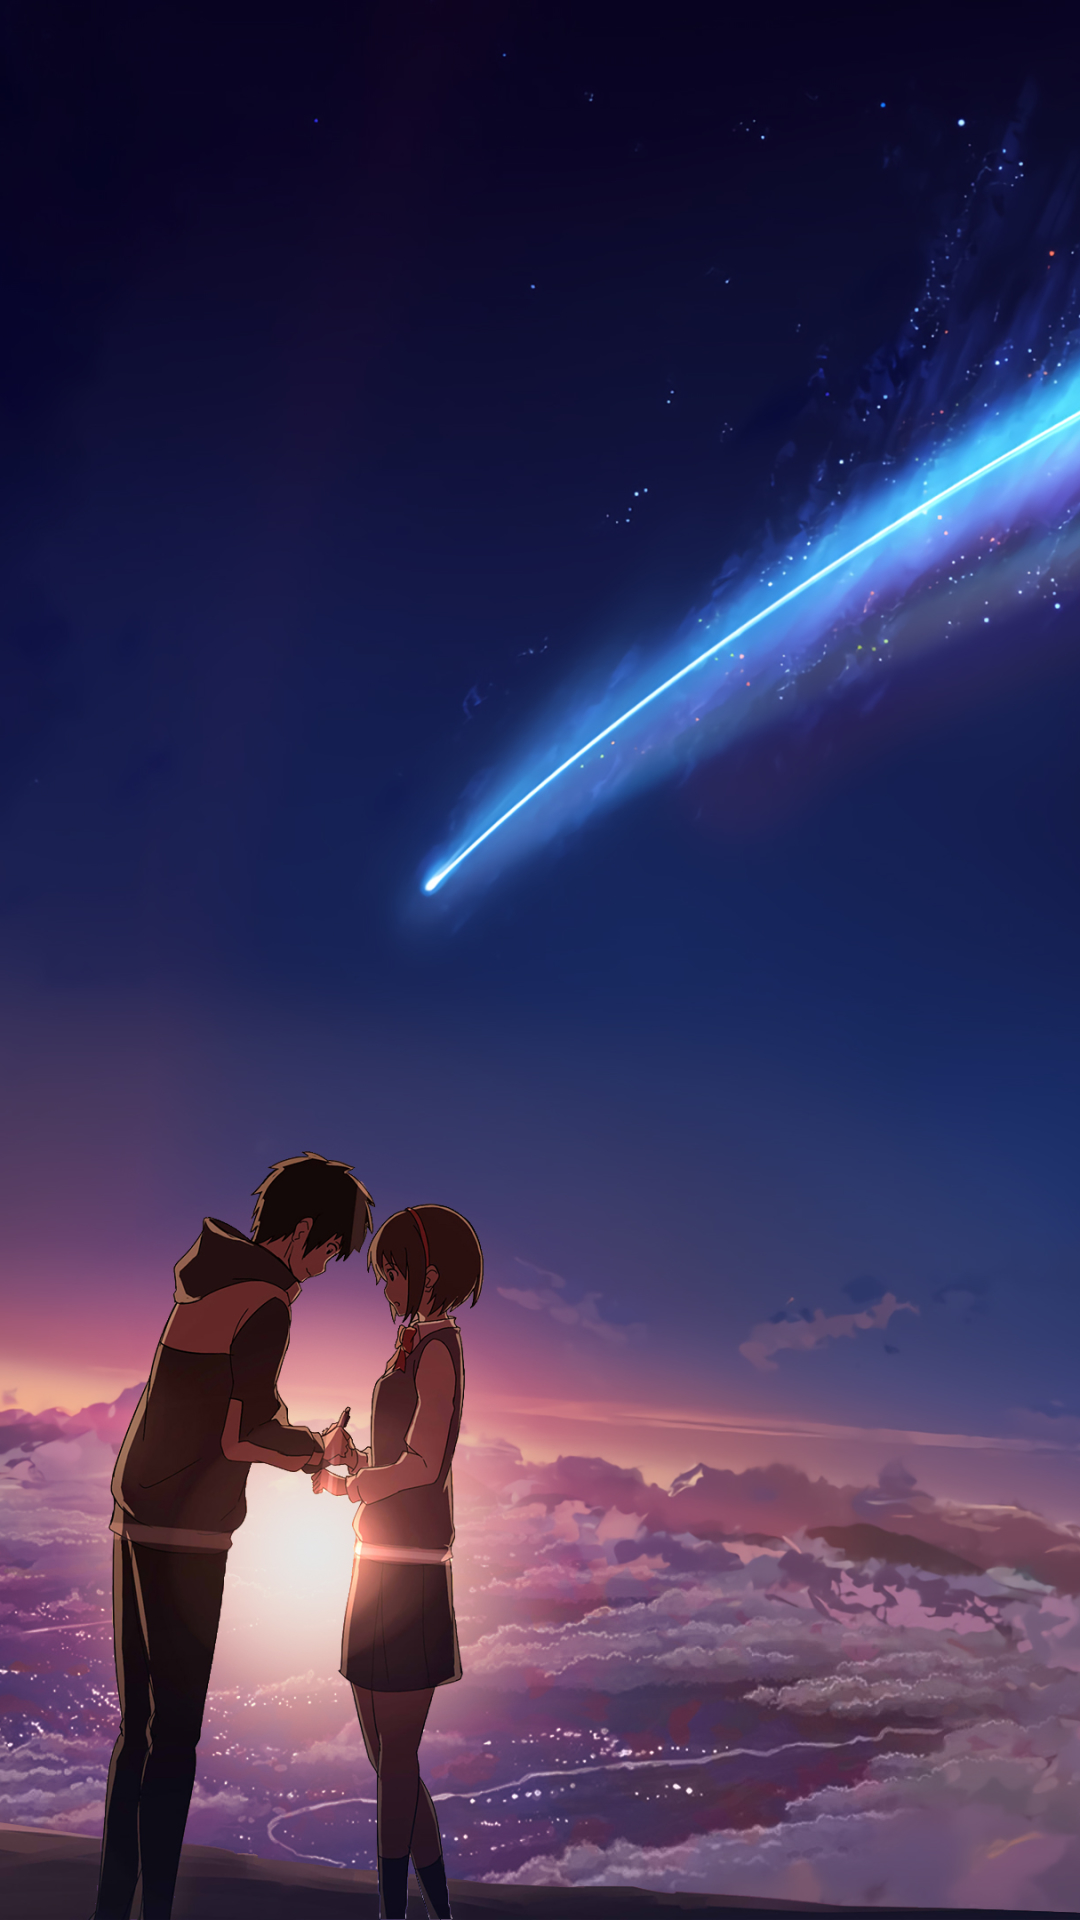 kimi no na wa your name android wallpaper - android hd wallpapers